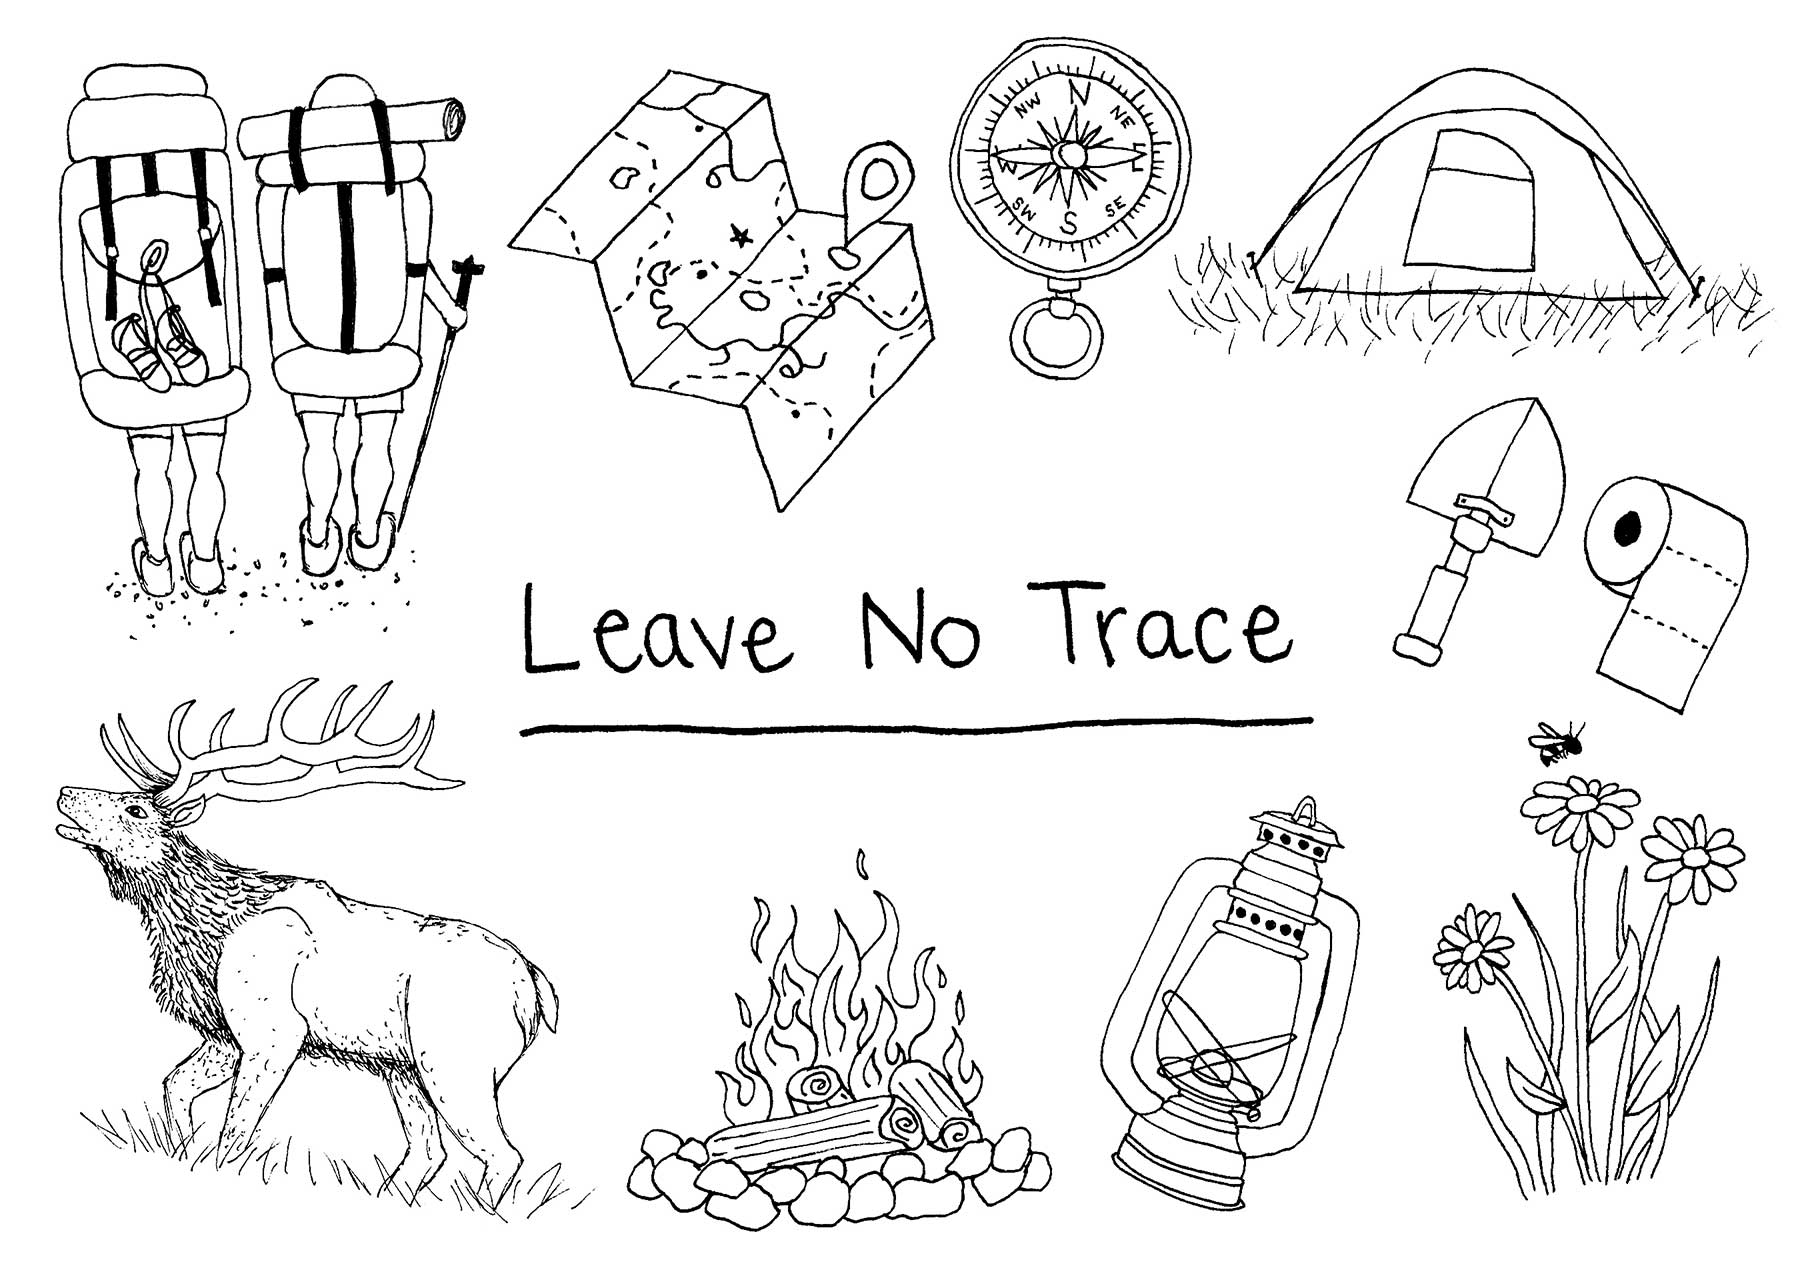 Leave No Trace Correcting Common Beliefs In The Wild